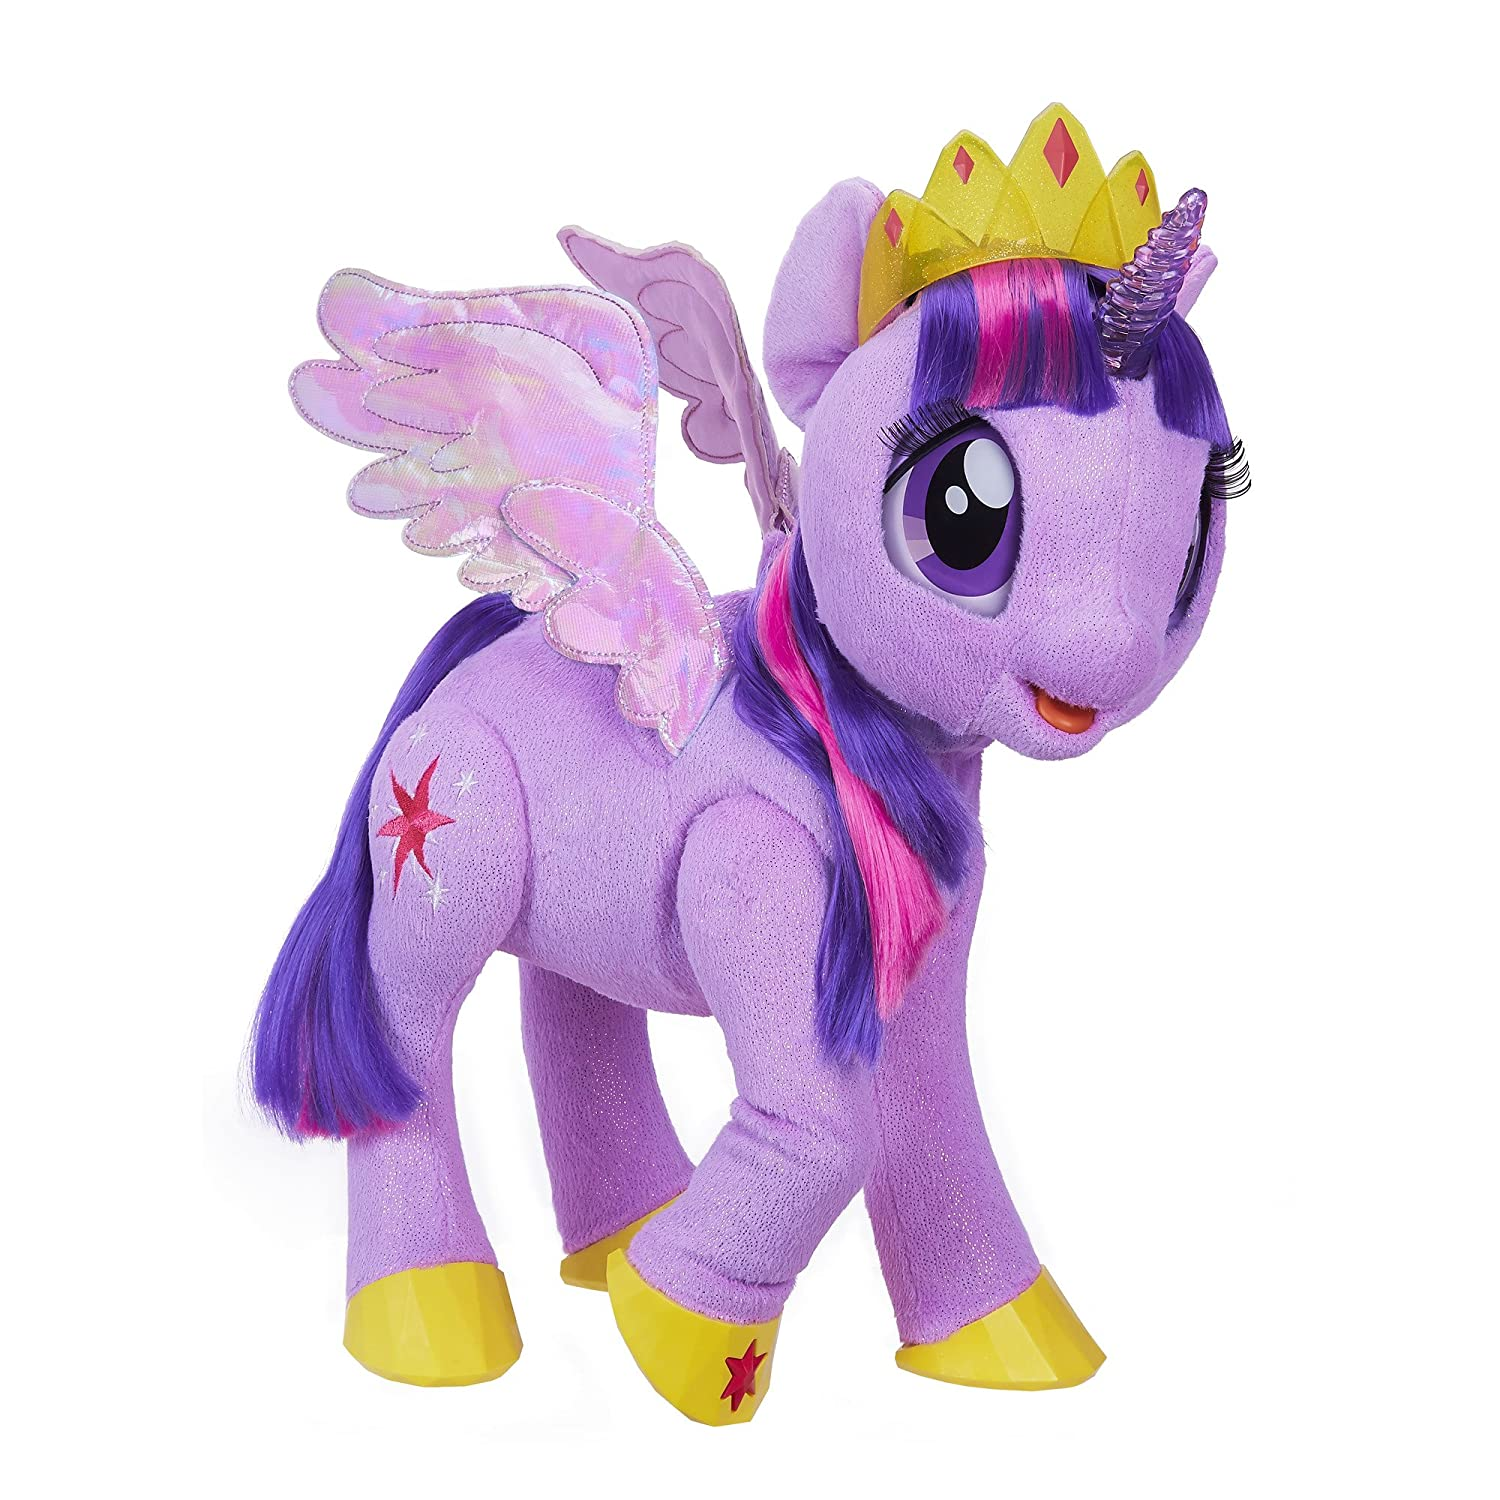 My Little Pony C0299S01 Toy Talking & Singing Twilight Sparkle, Soft Interactive Purple Unicorn with Wings, Kids Ages 3 & Up.